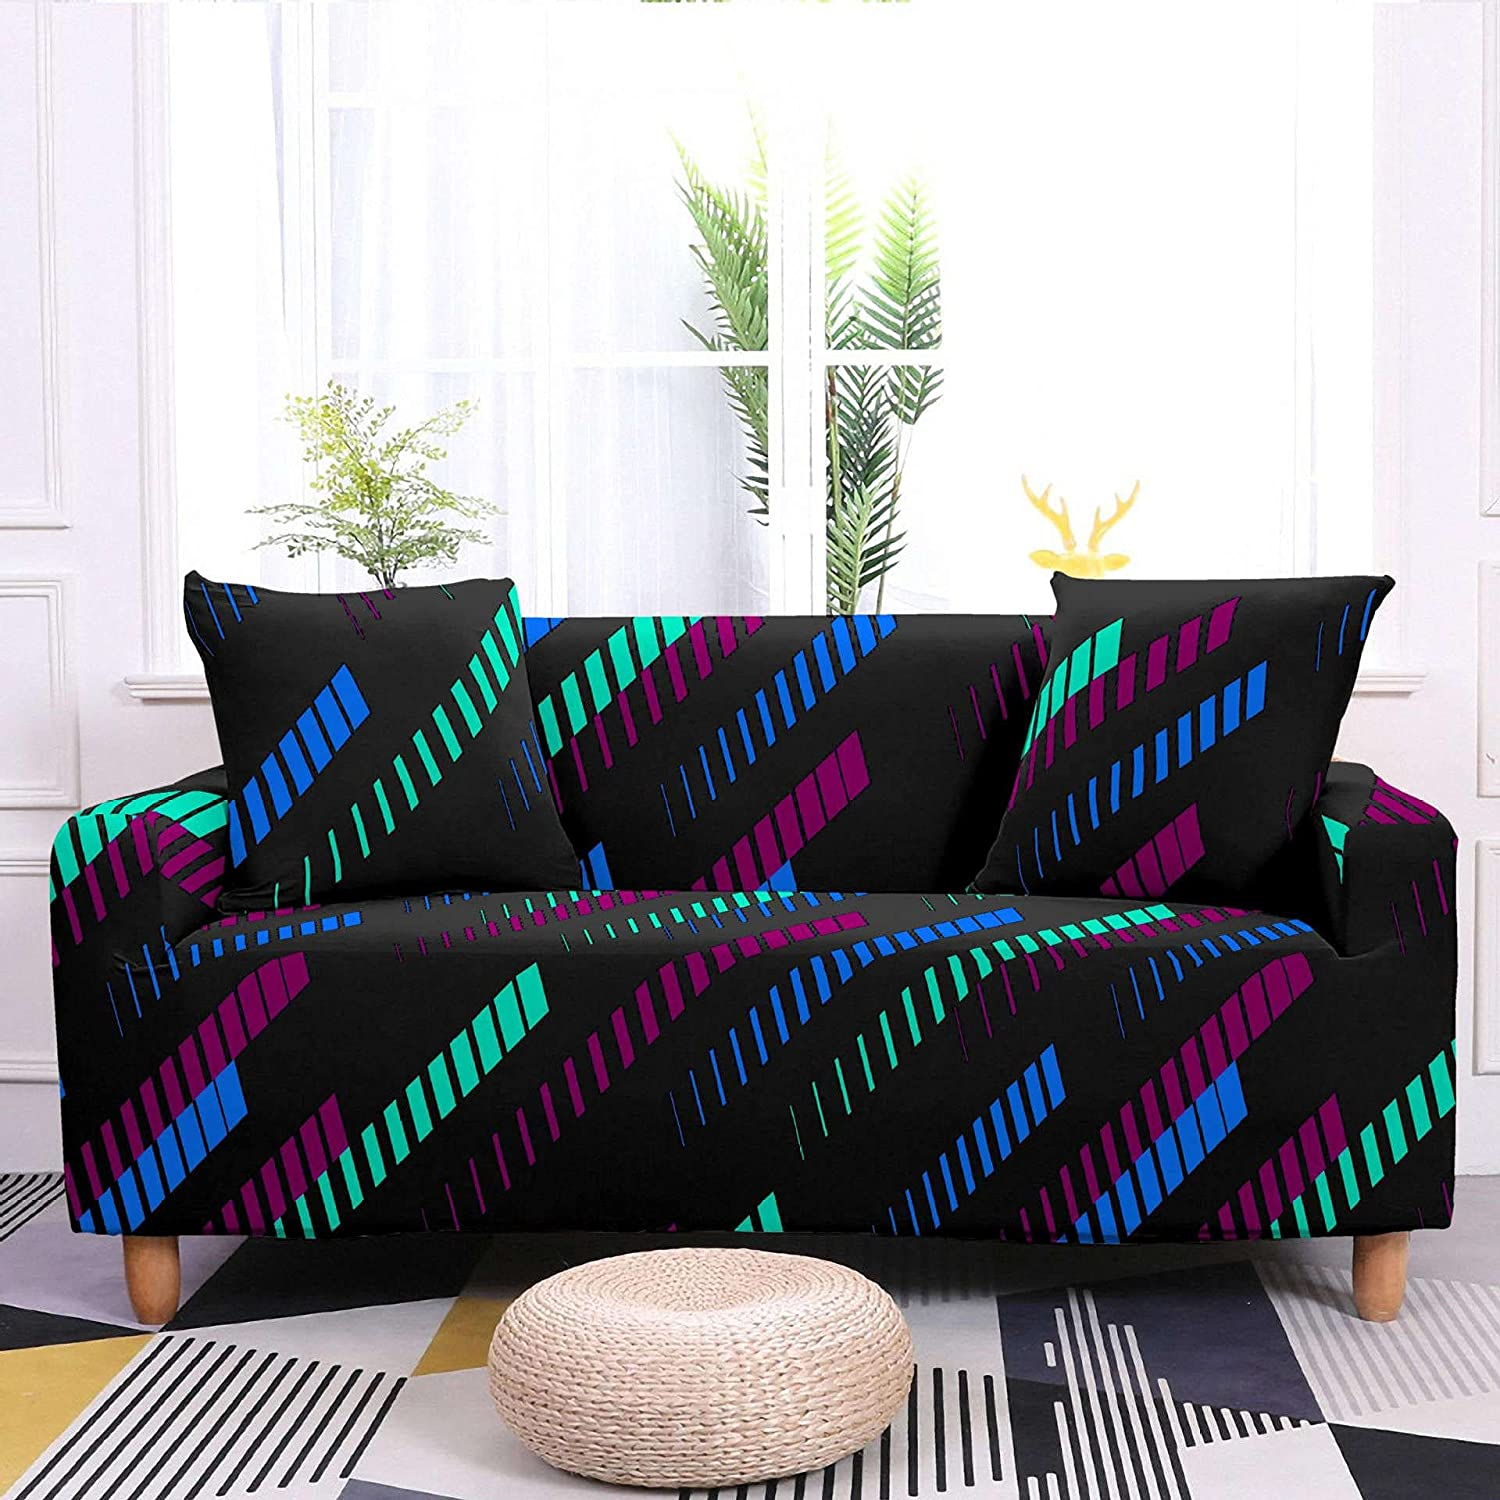 RWHXN Printed Sofa Cover All-Inclusiv Cash special price Non-Slip Sales of SALE items from new works Elastic Universal